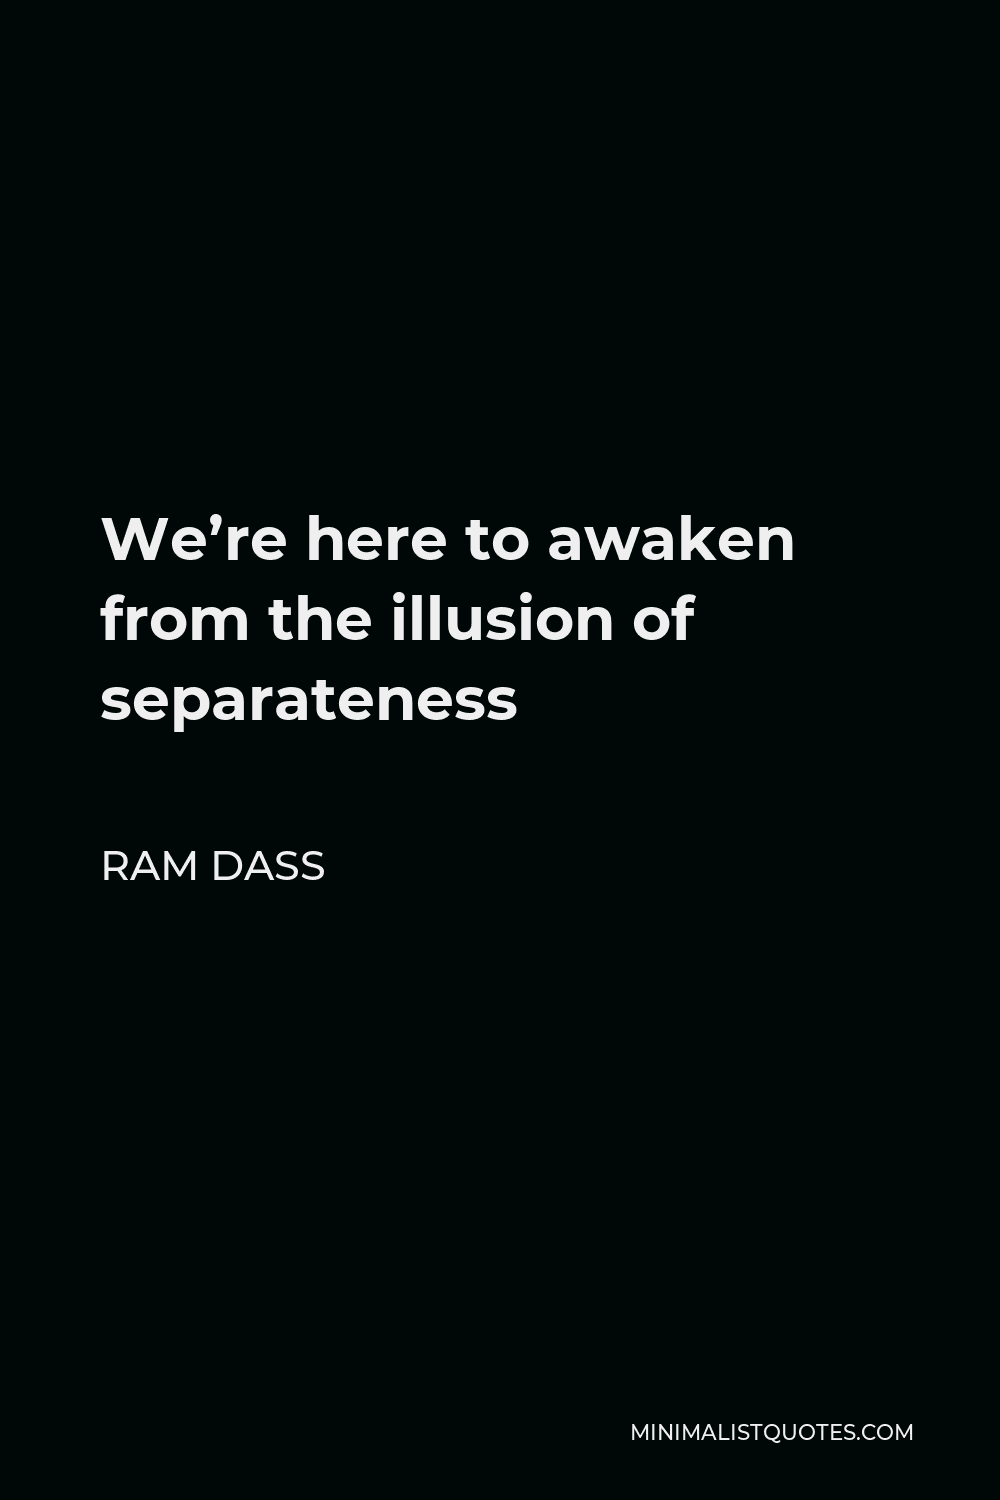 Ram Dass Quote - We're here to awaken from the illusion of separateness